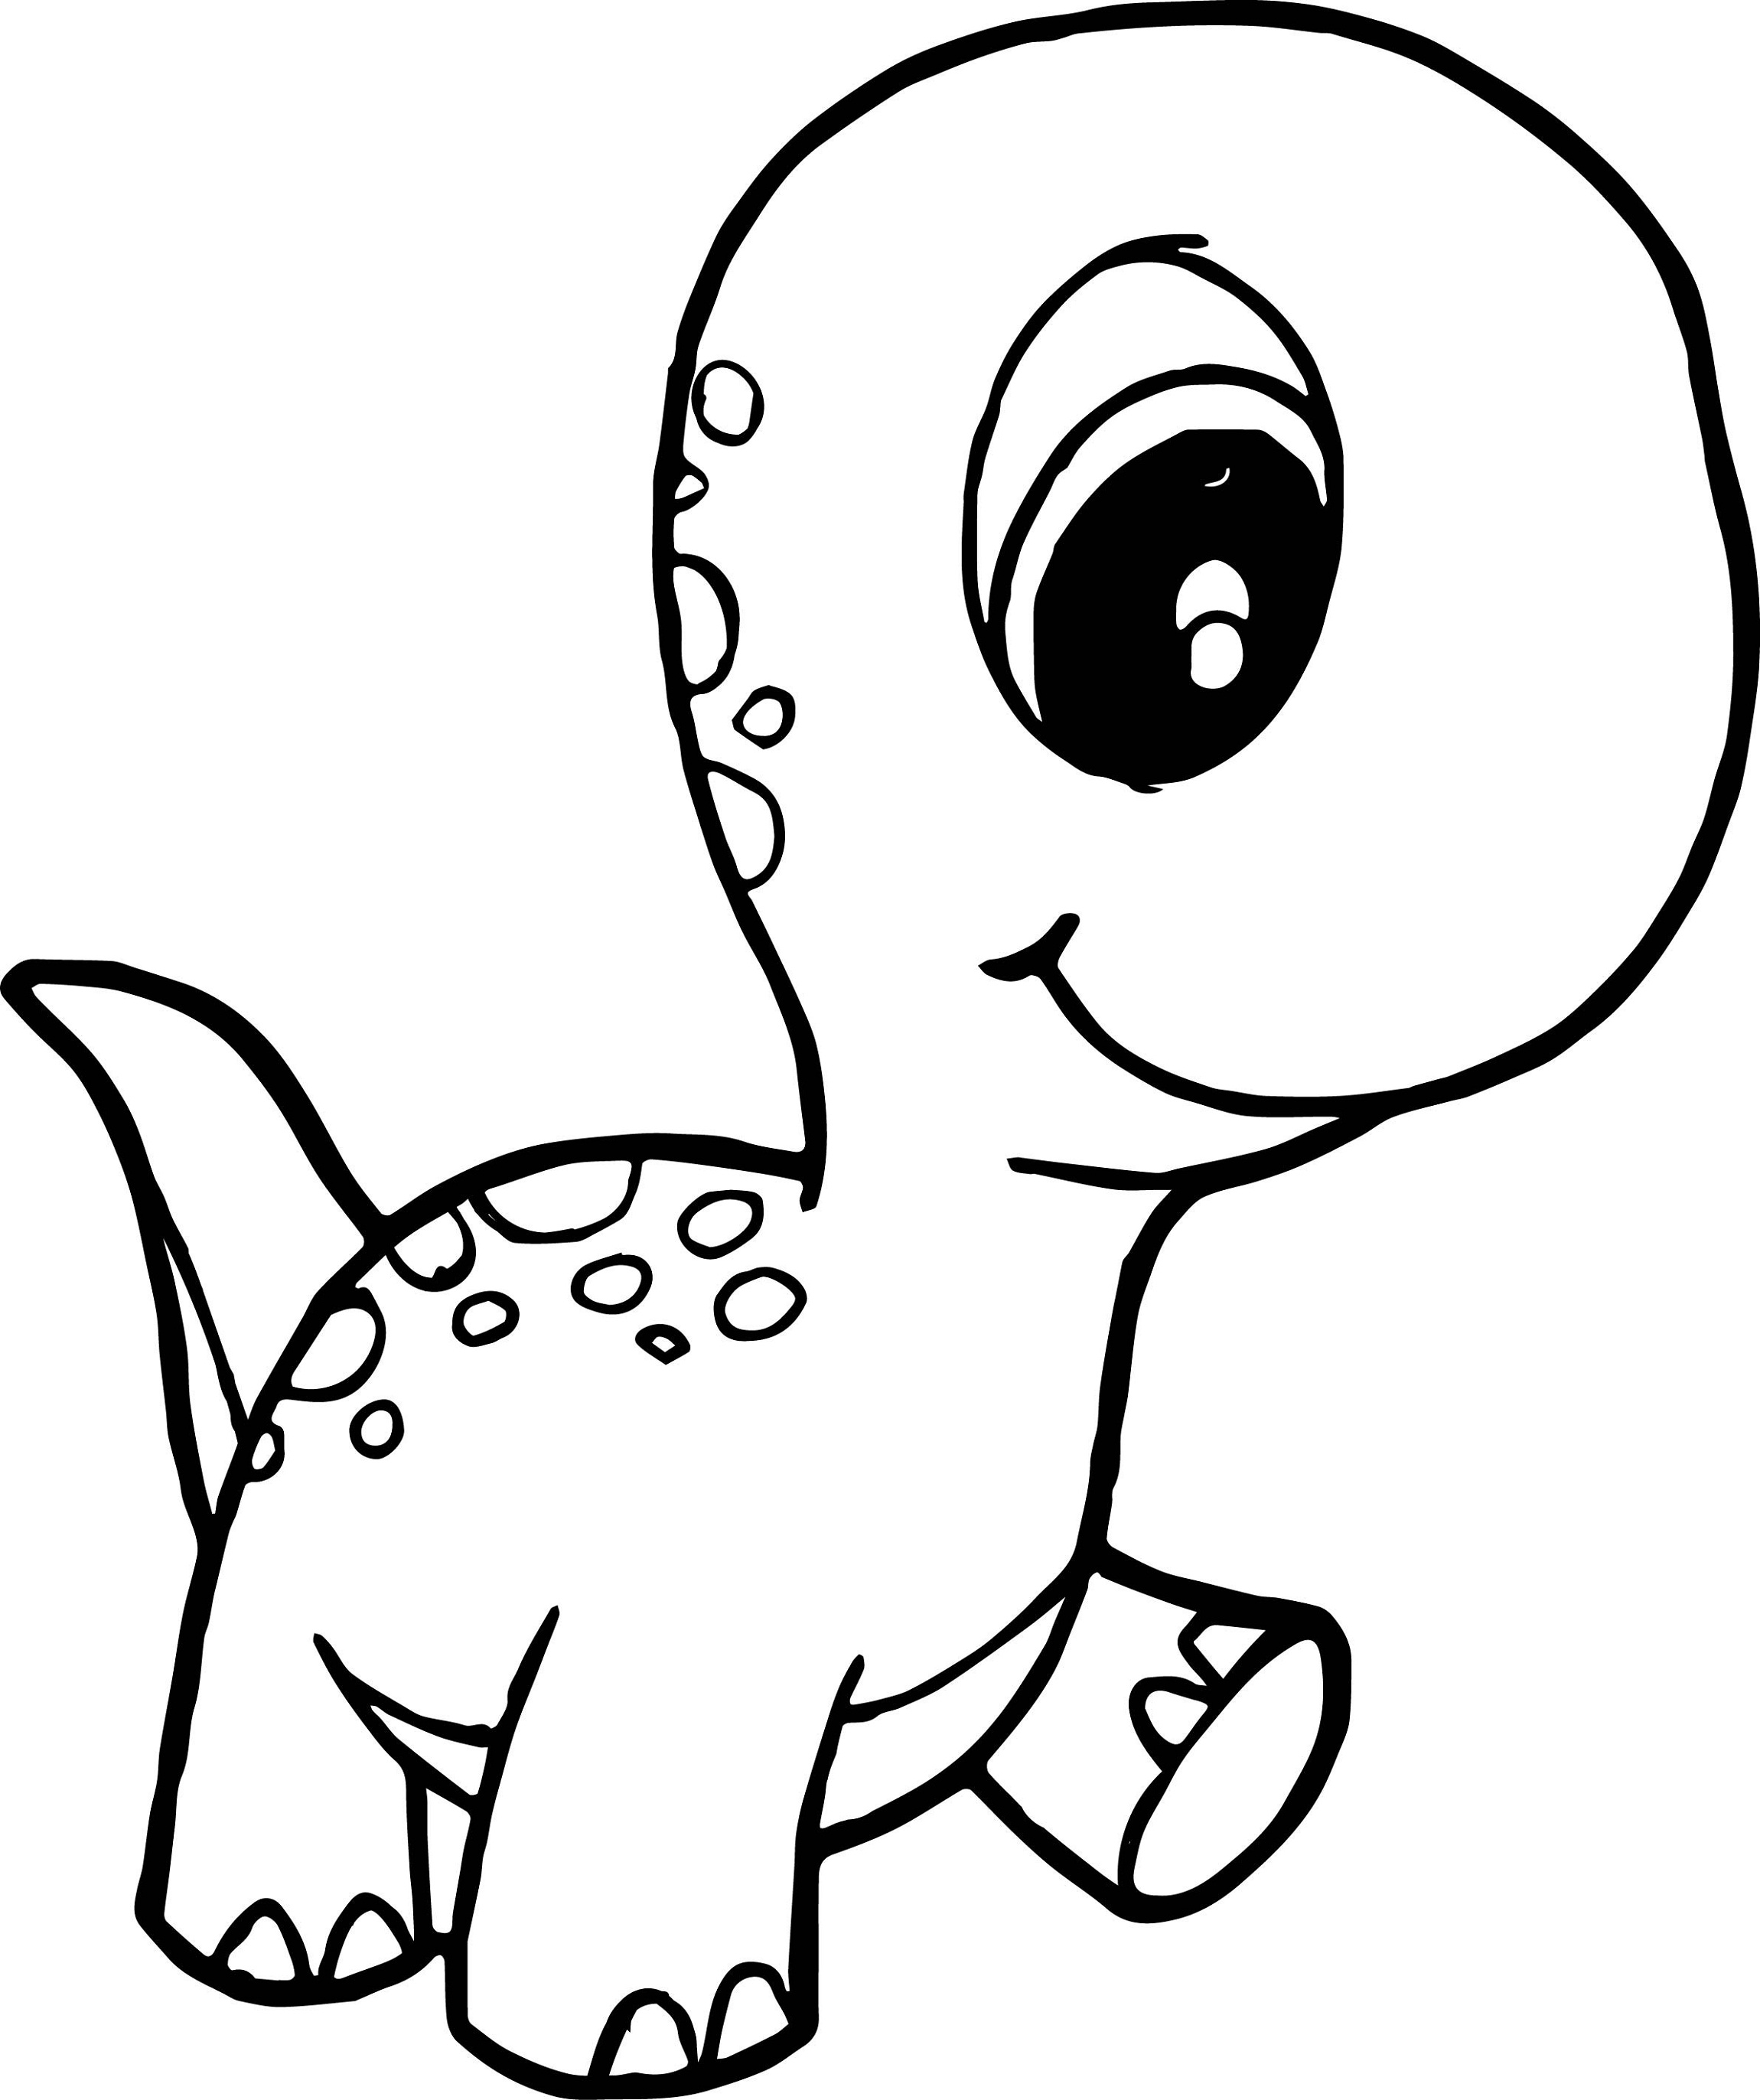 Baby Dinosaur Coloring Pages For Preschoolers Activity Shelter